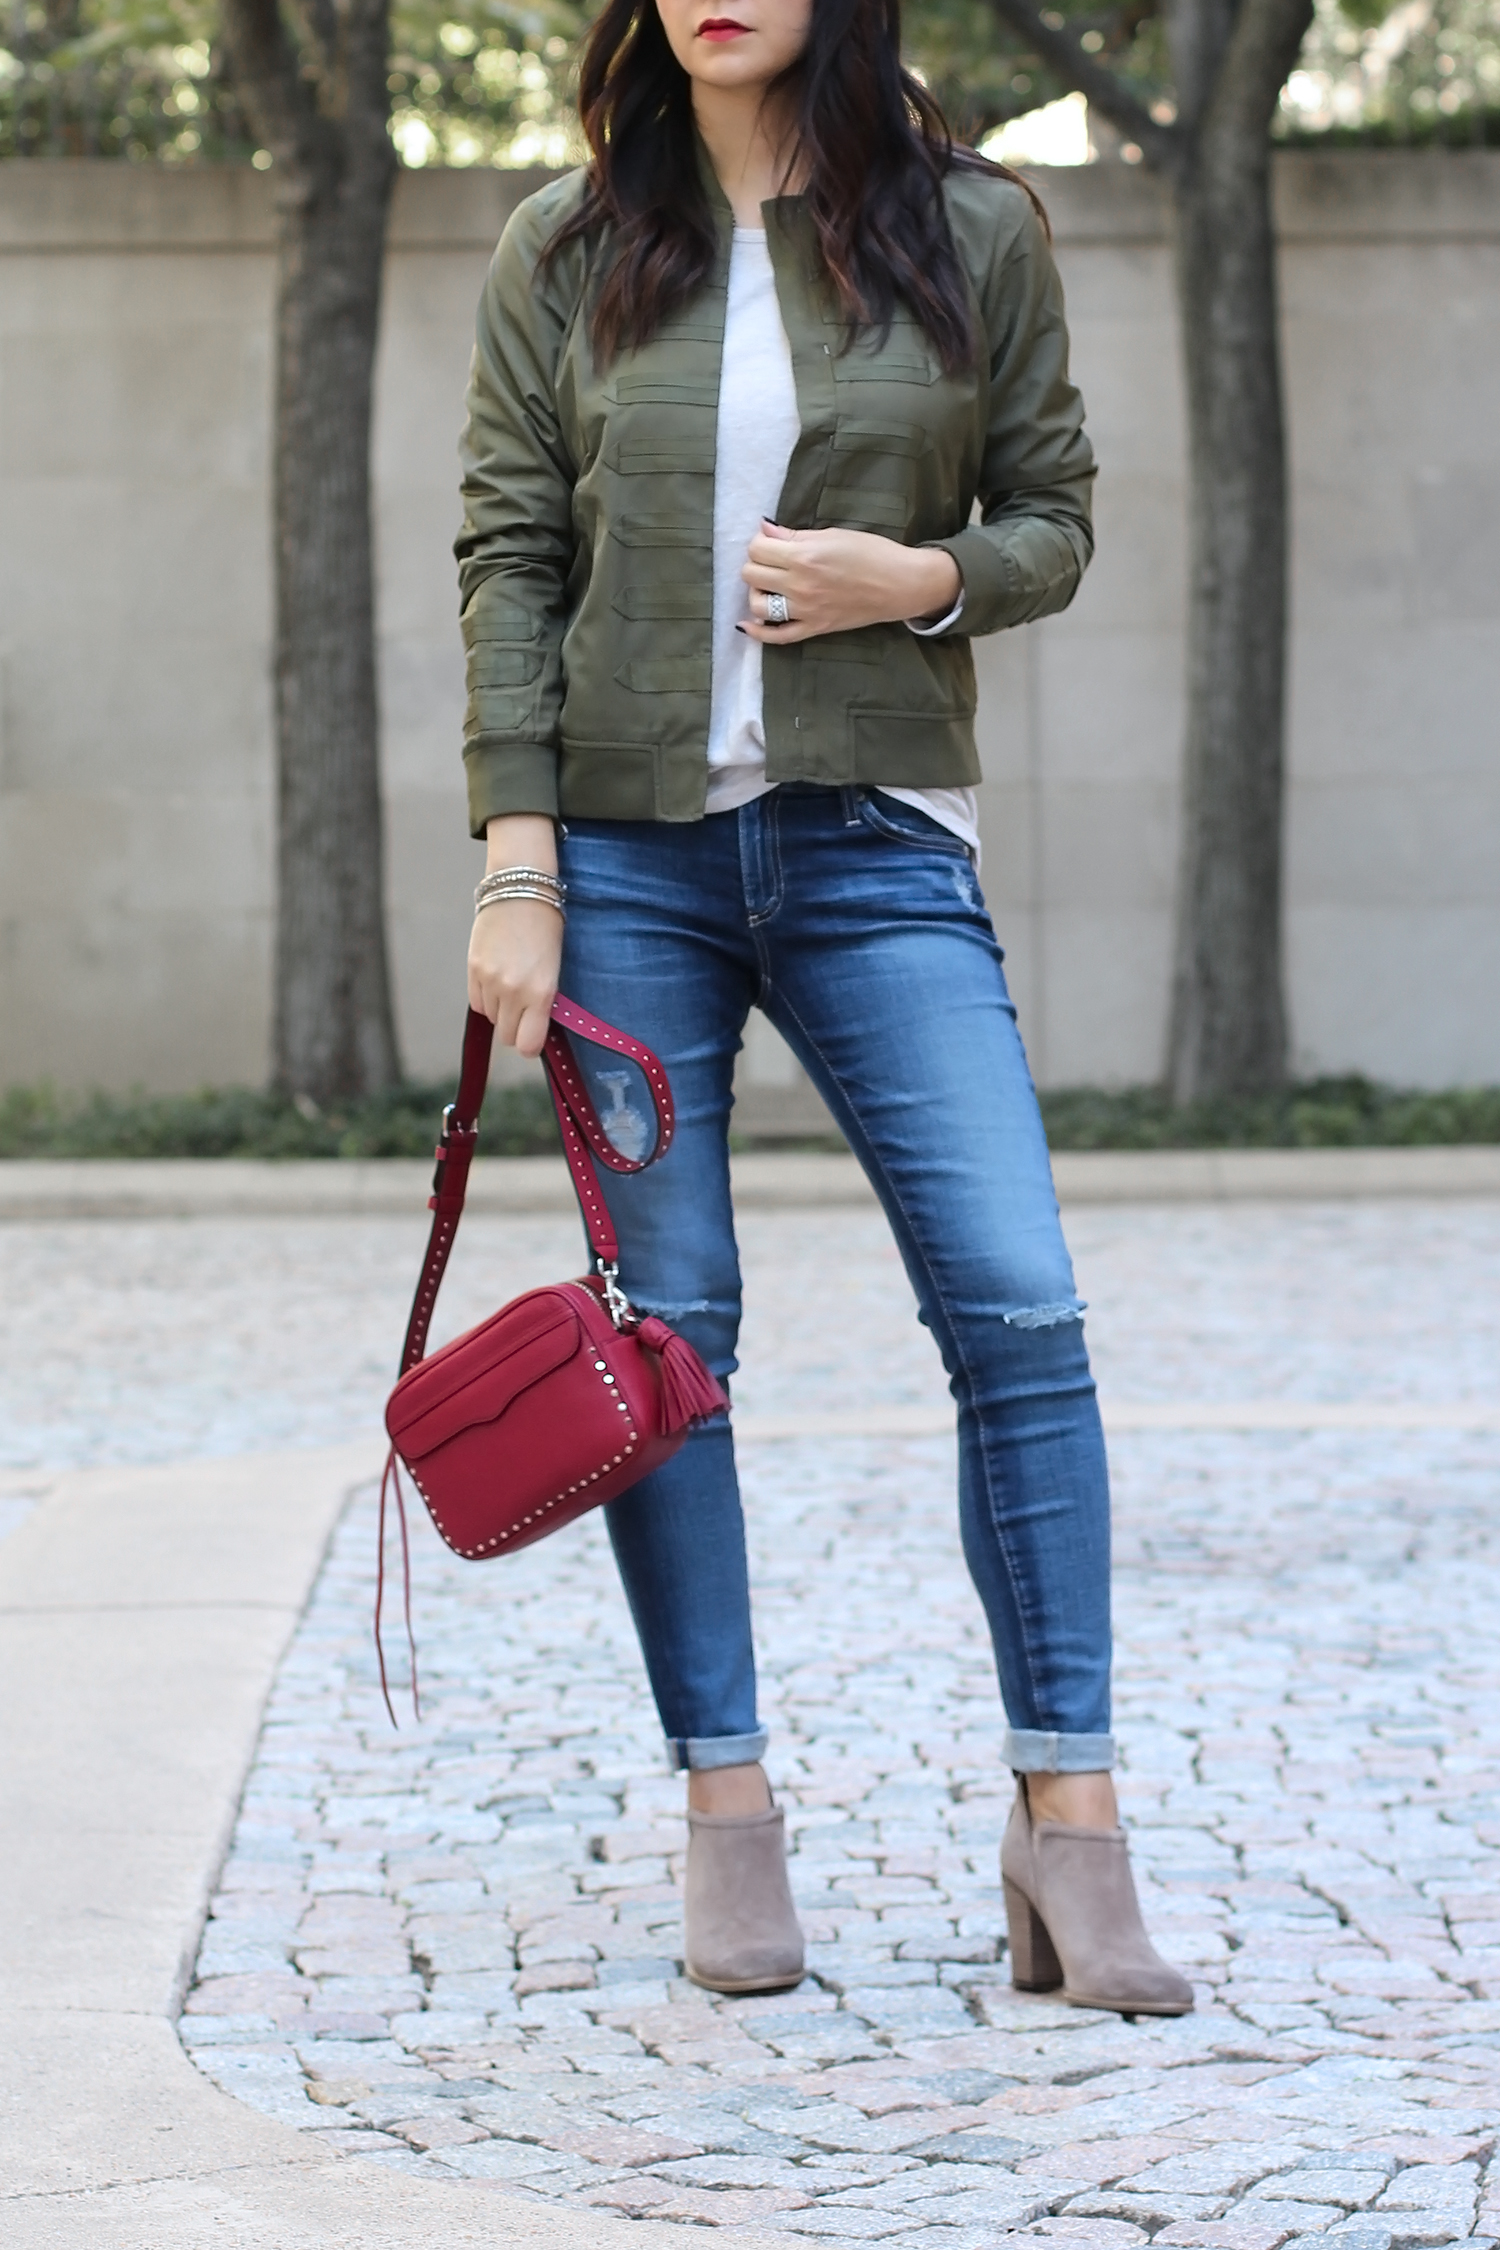 Bomber Jacket Outfit, Distressed Jeans with Ankle Boots Outfit